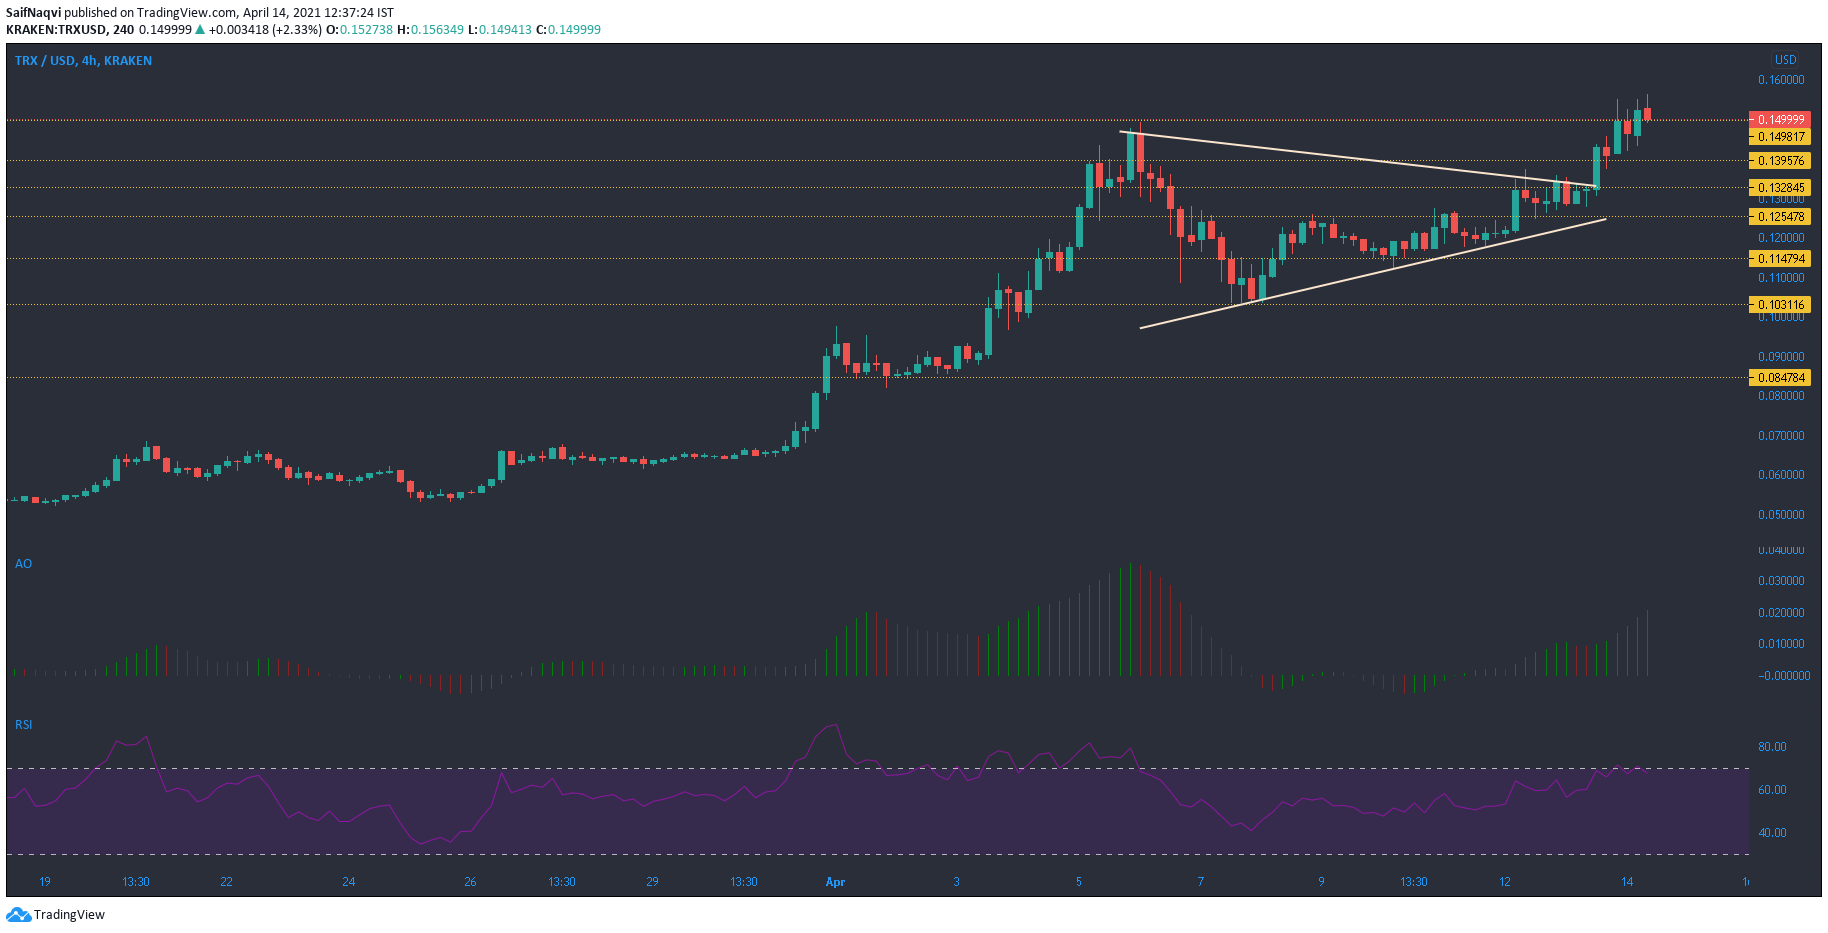 Tron, Neo, IOST Price Analysis: 14 April